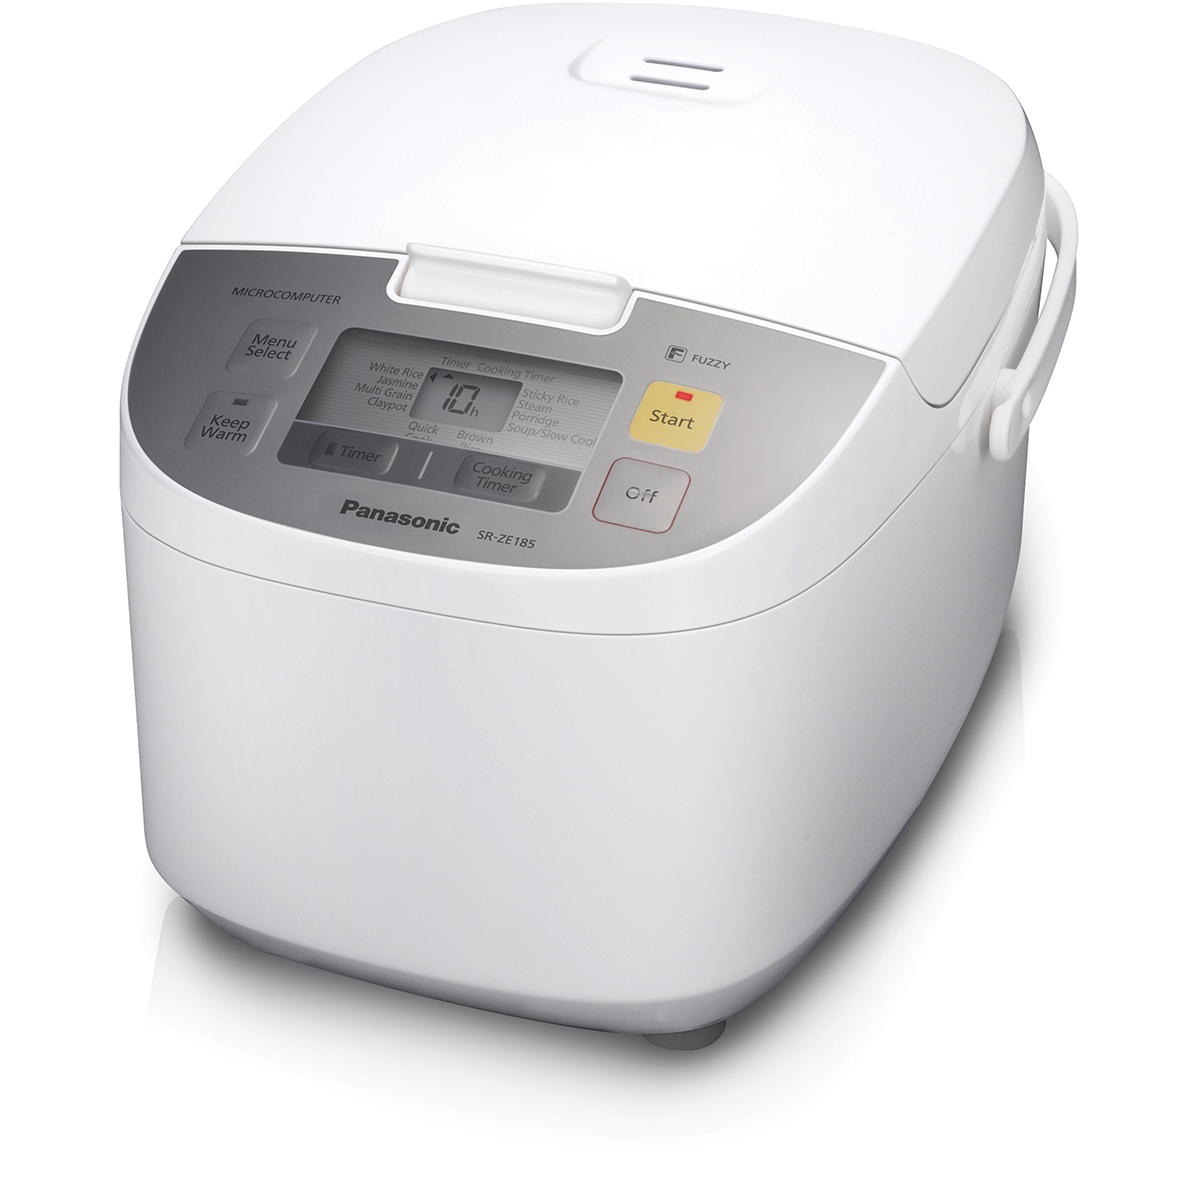 Panasonic Rice Cooker SR-ZE185WST